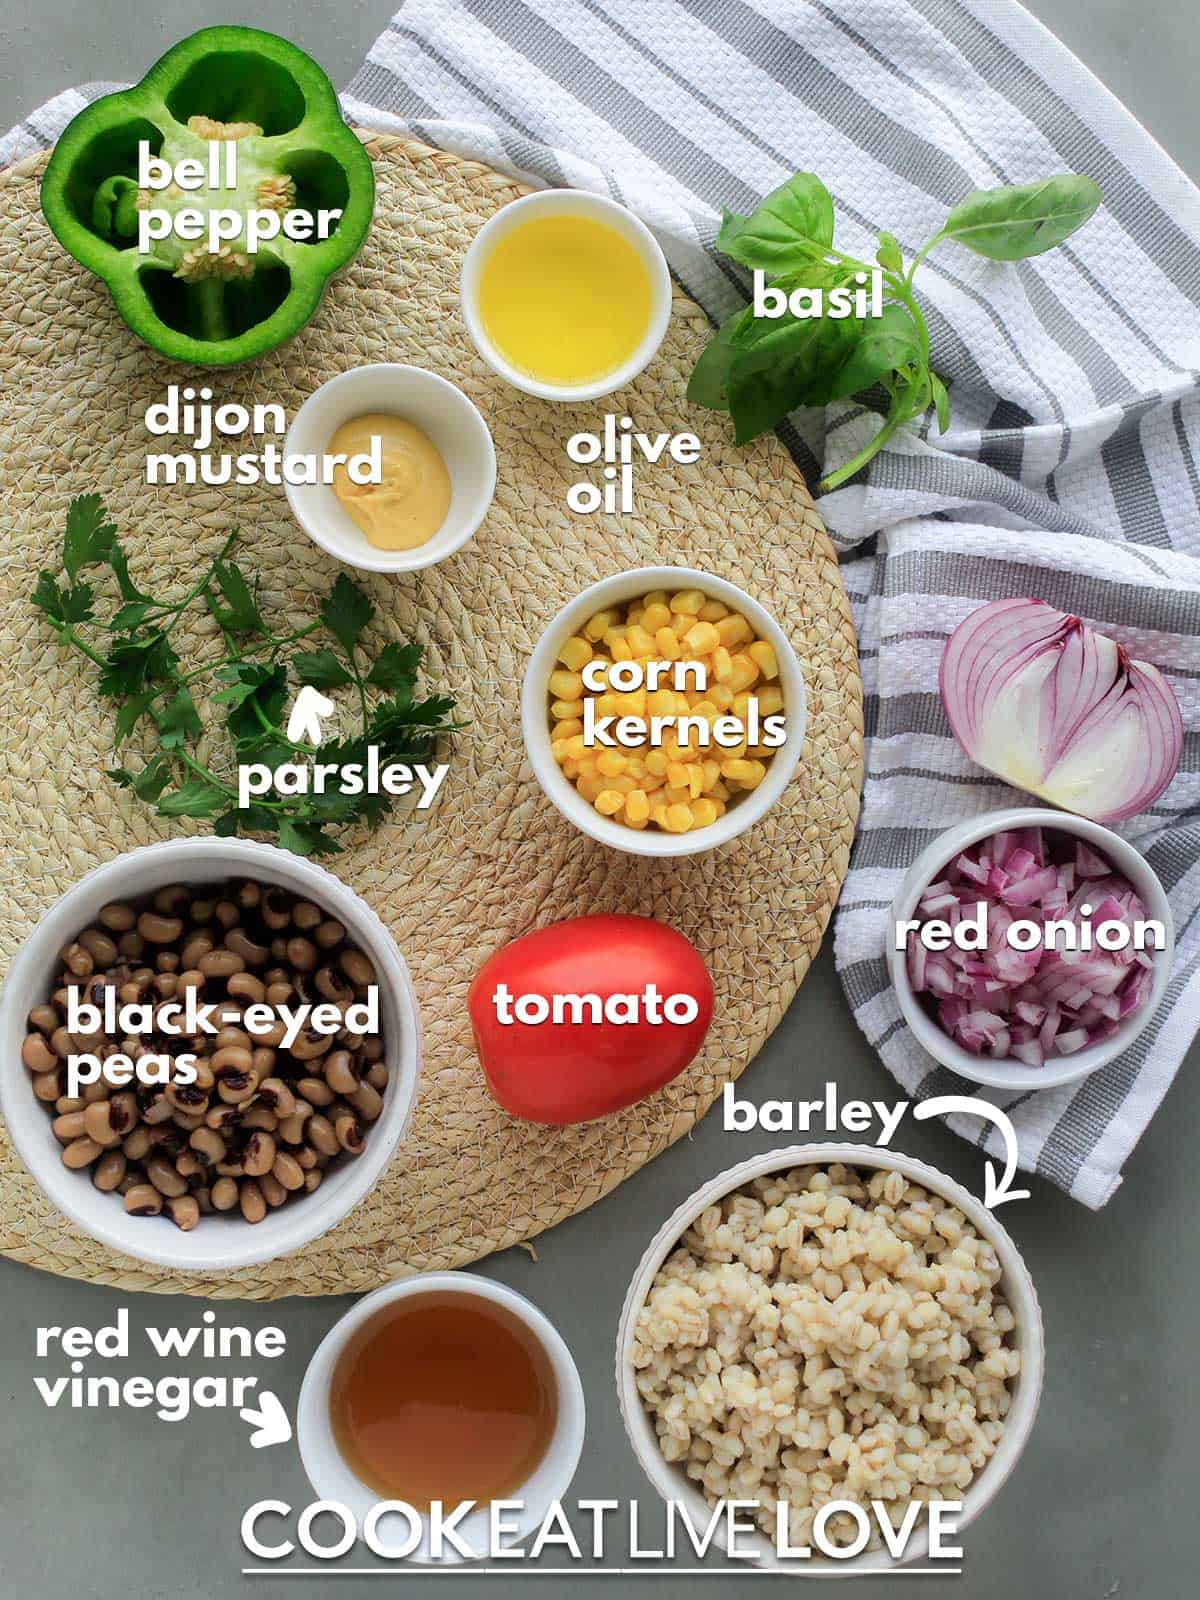 Ingredients to make barley salad on the table with text labels